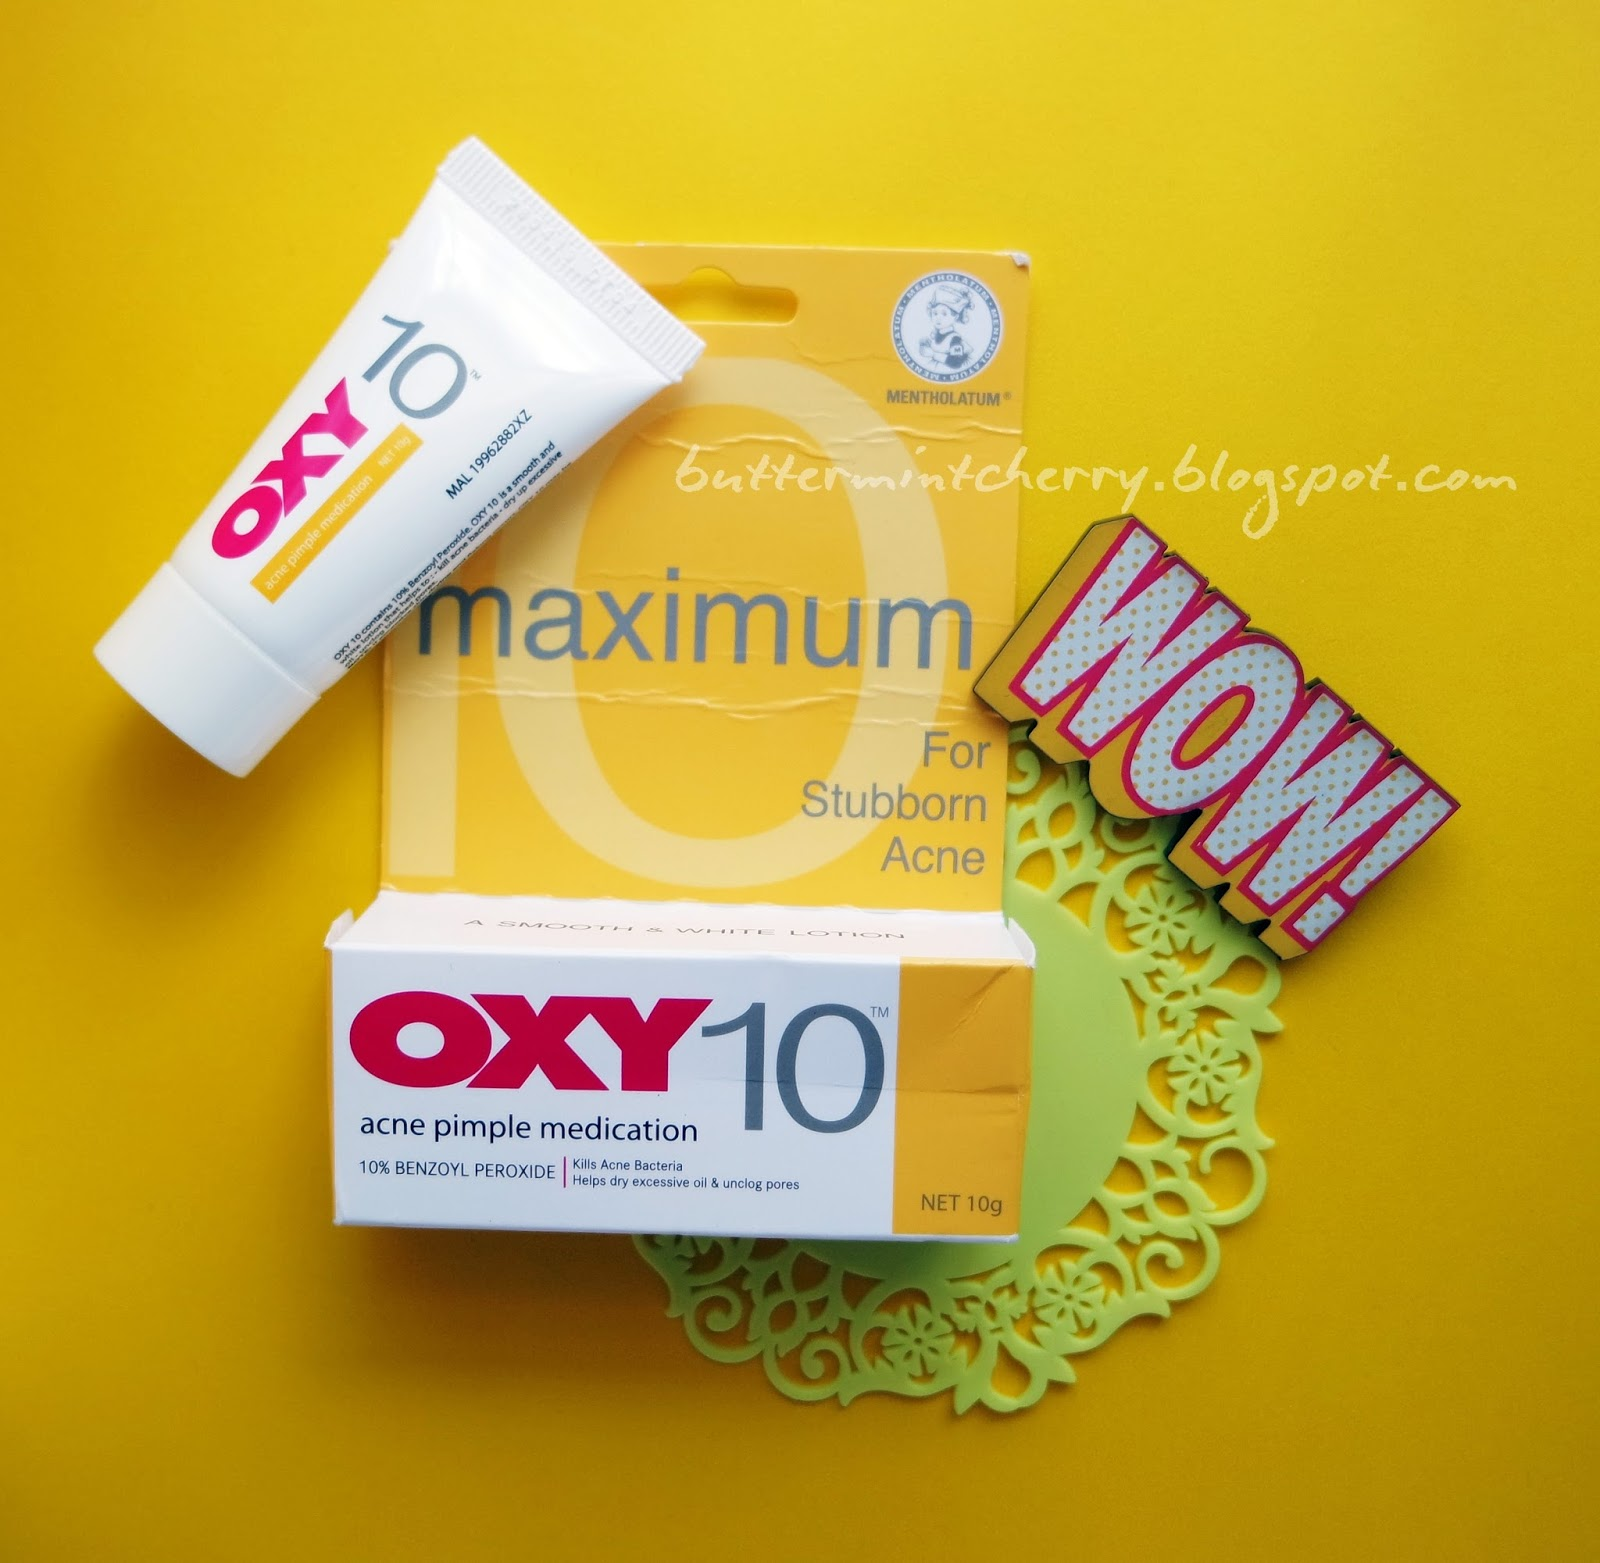 [REVIEW] OXY 10 (Acne Pimple Medication) Obat Jerawat